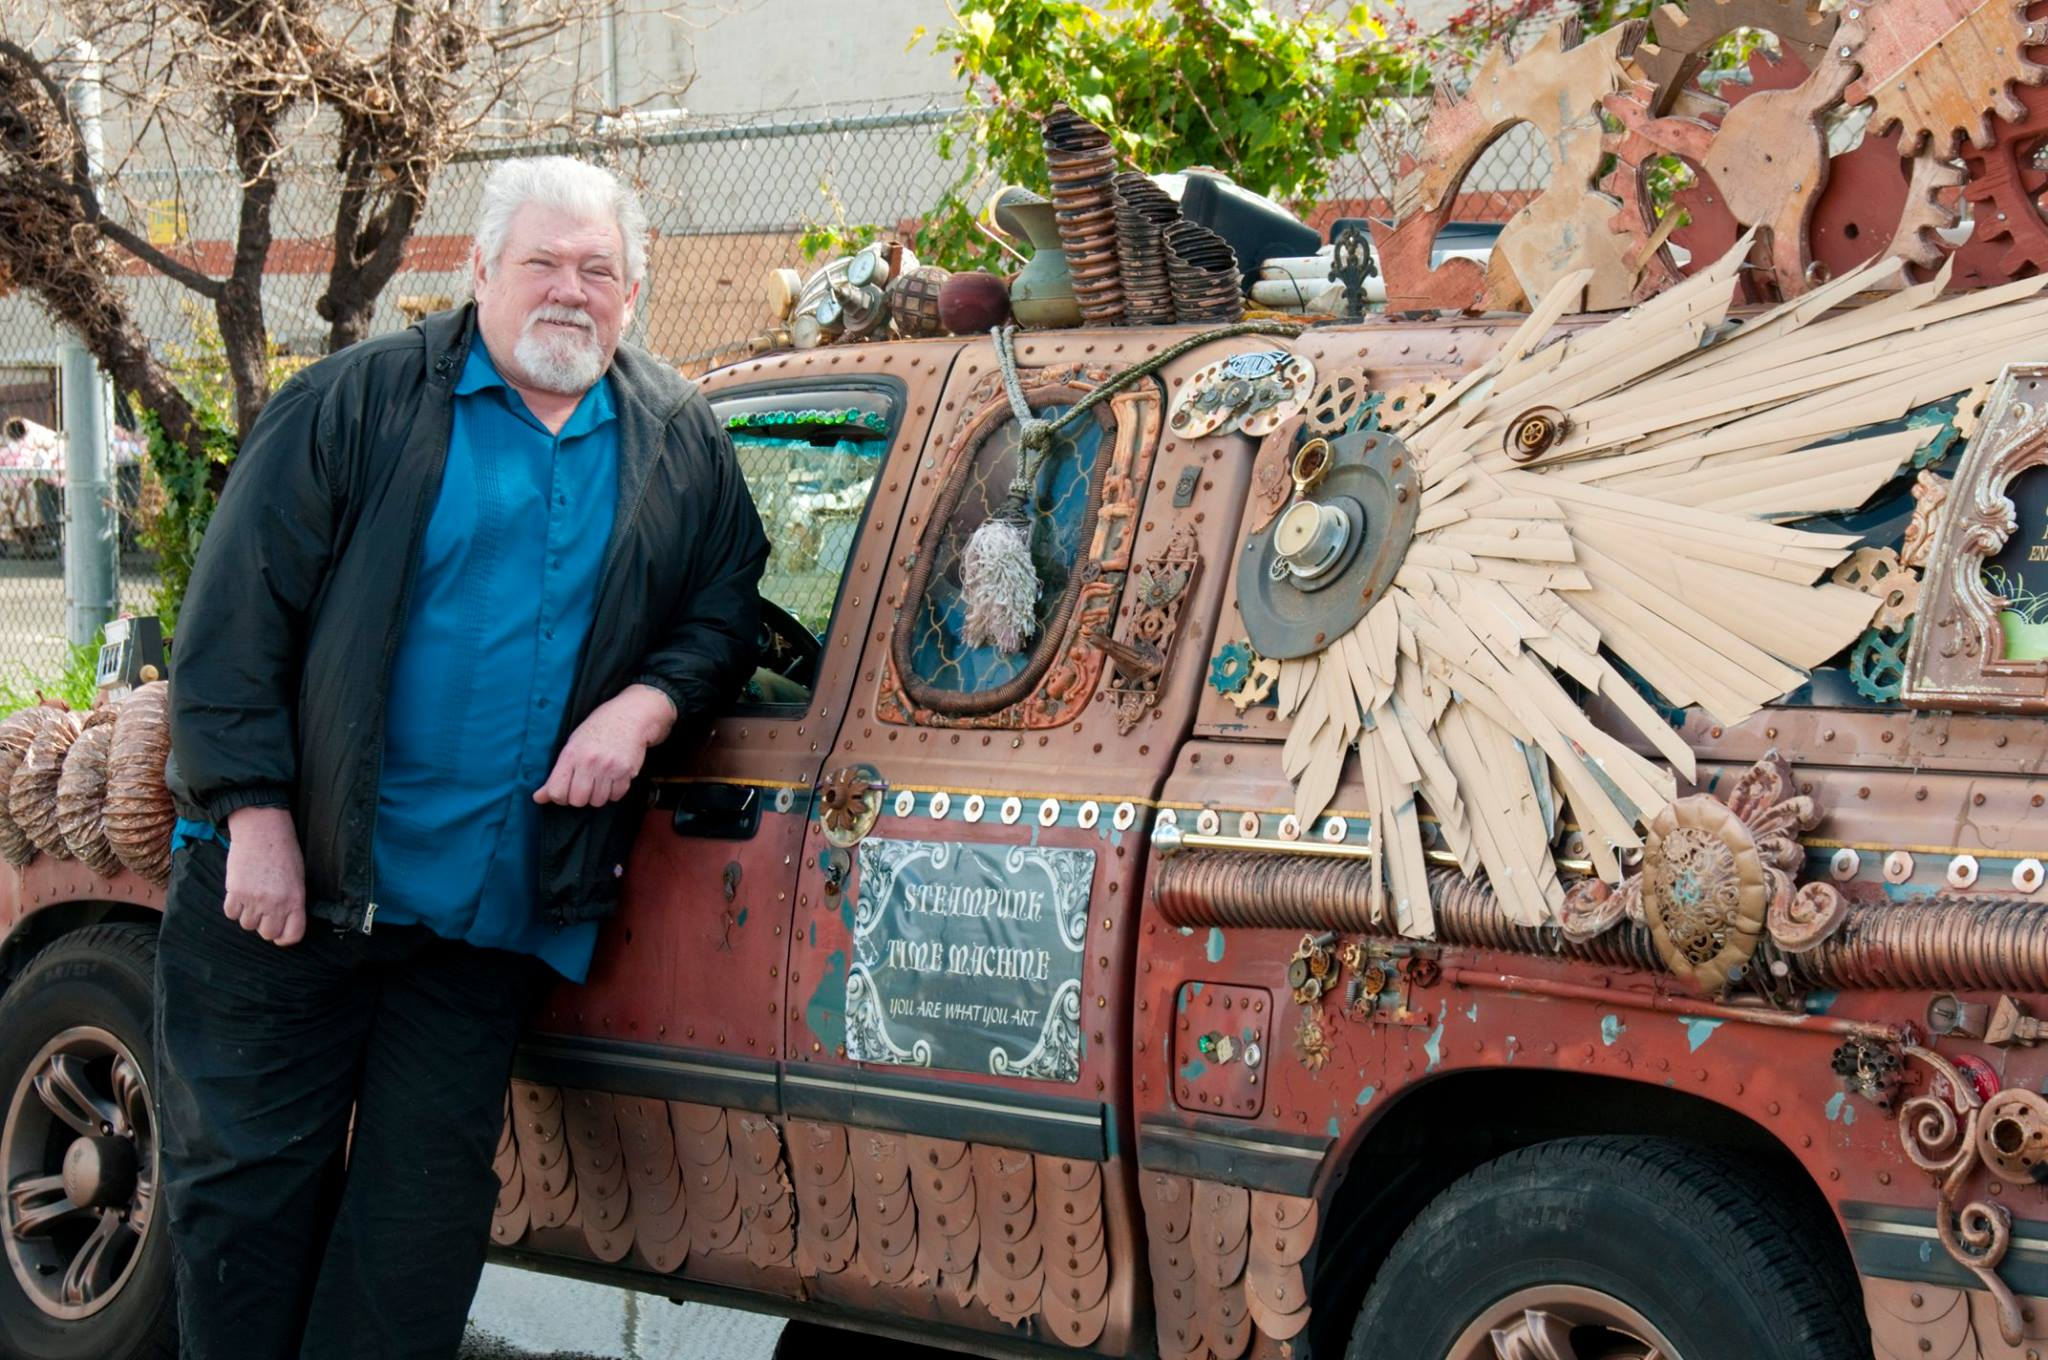 """Vehicle of Enlightenment"" by Susan Jett. Photo: Greg NettGreg ""Grego"" Nett with first steampunk inspired art car, a 1997 Toyota T100. Photo: Greg Nett"